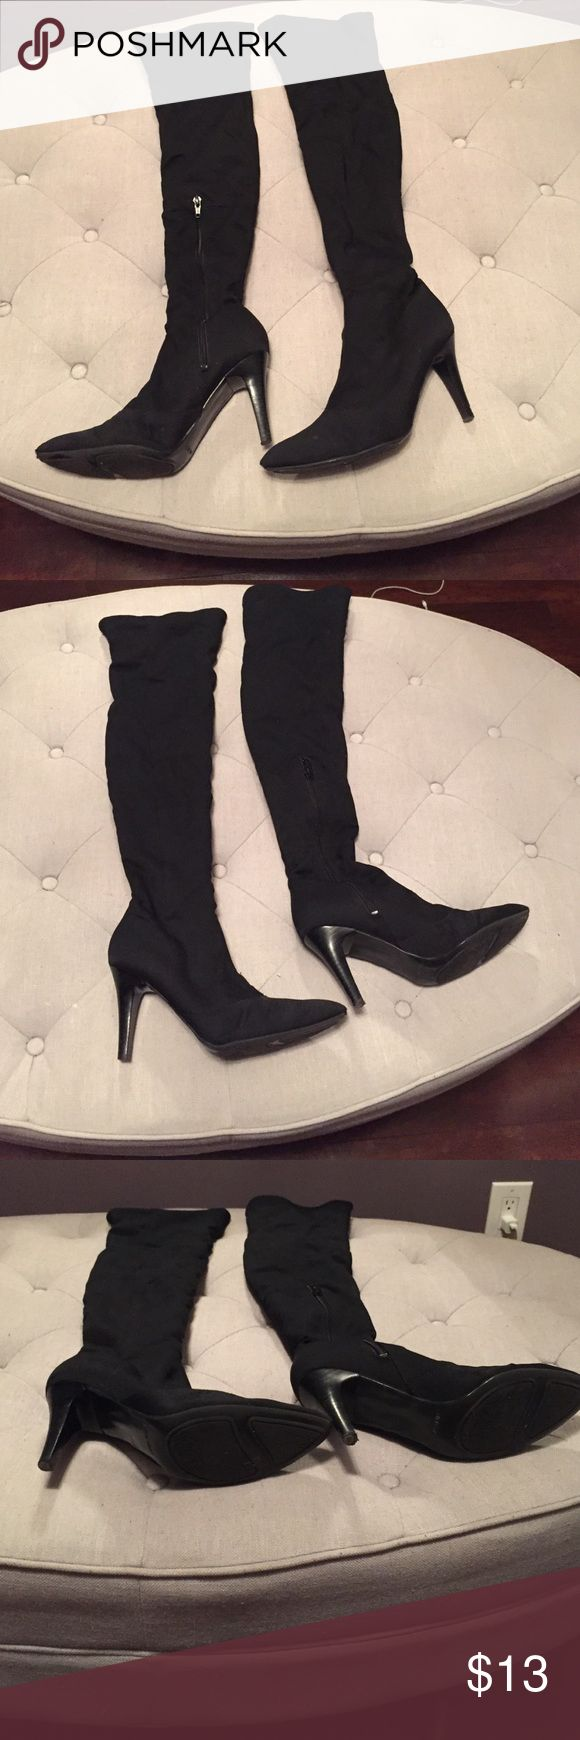 Nine West stretch boots Nine West stretch over knee boots , size 8.5, smoke free home. Little normal heel wear and tip wear . Otherwise good shape Nine West Shoes Over the Knee Boots